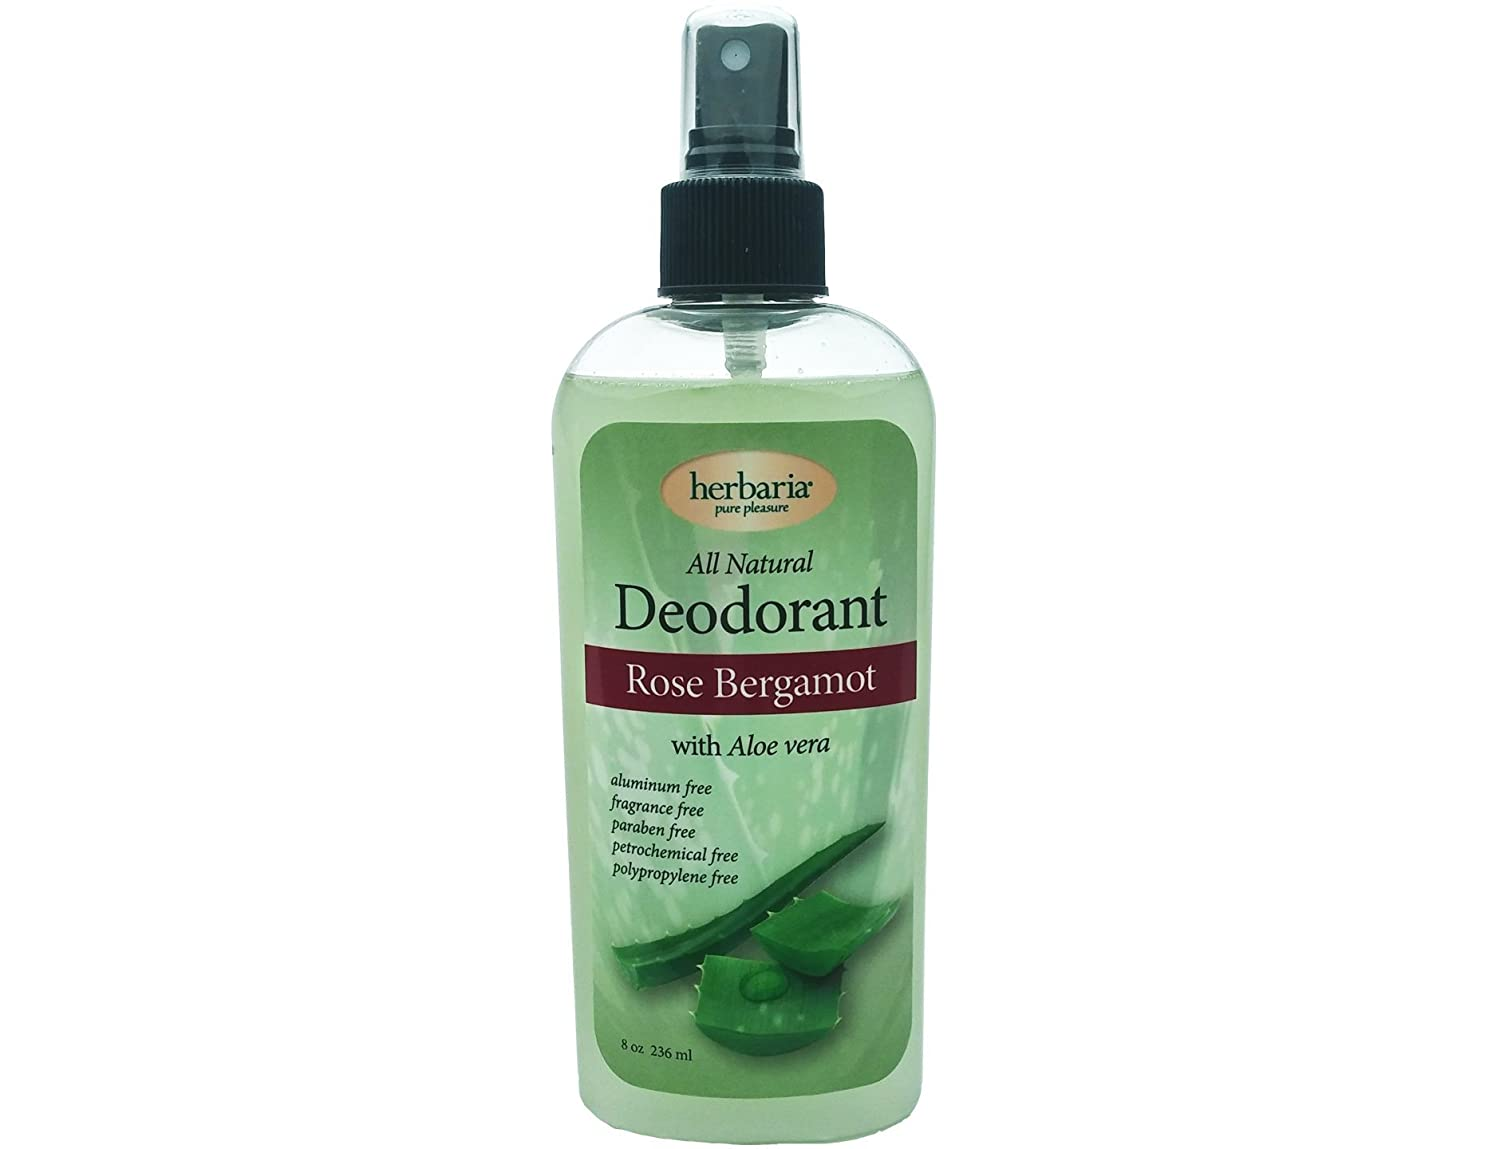 Herbaria all natural Rose Bergamot Deodorant with essential oils and aloe 8 ounces